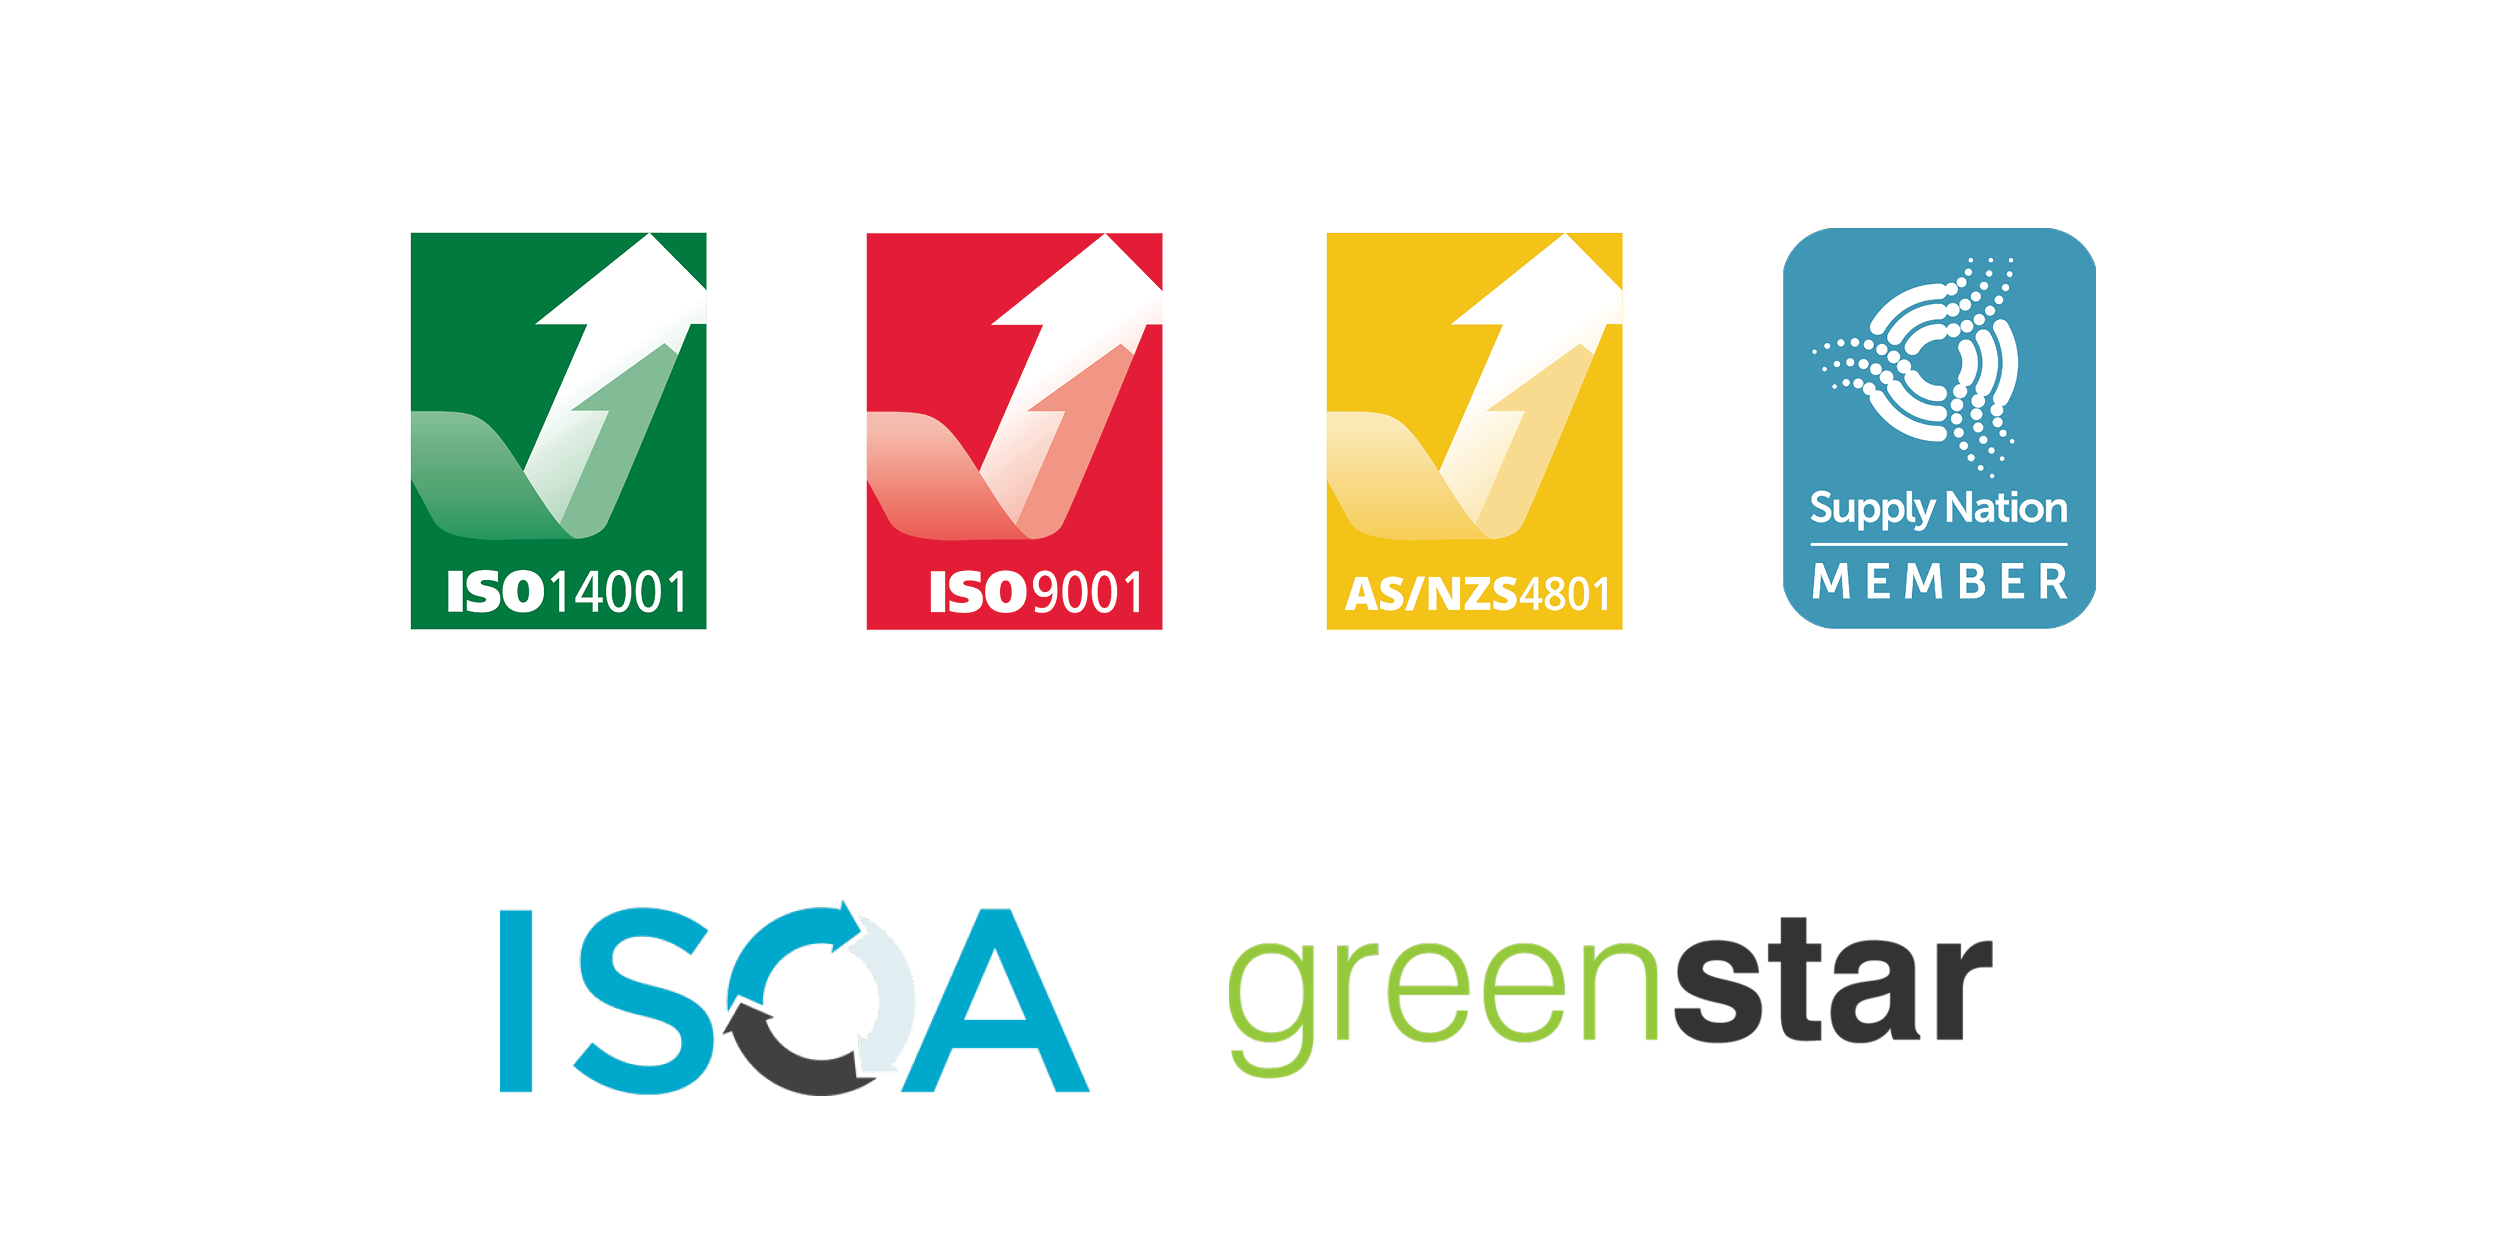 Grasshopper Environmental is awarded with several certifications in best practice in sustainability & waste management including; IS0 14001, ISO 9001, AS/NZS 4801, Supply Nation and ISCA Membership and Green Star Accreditation.